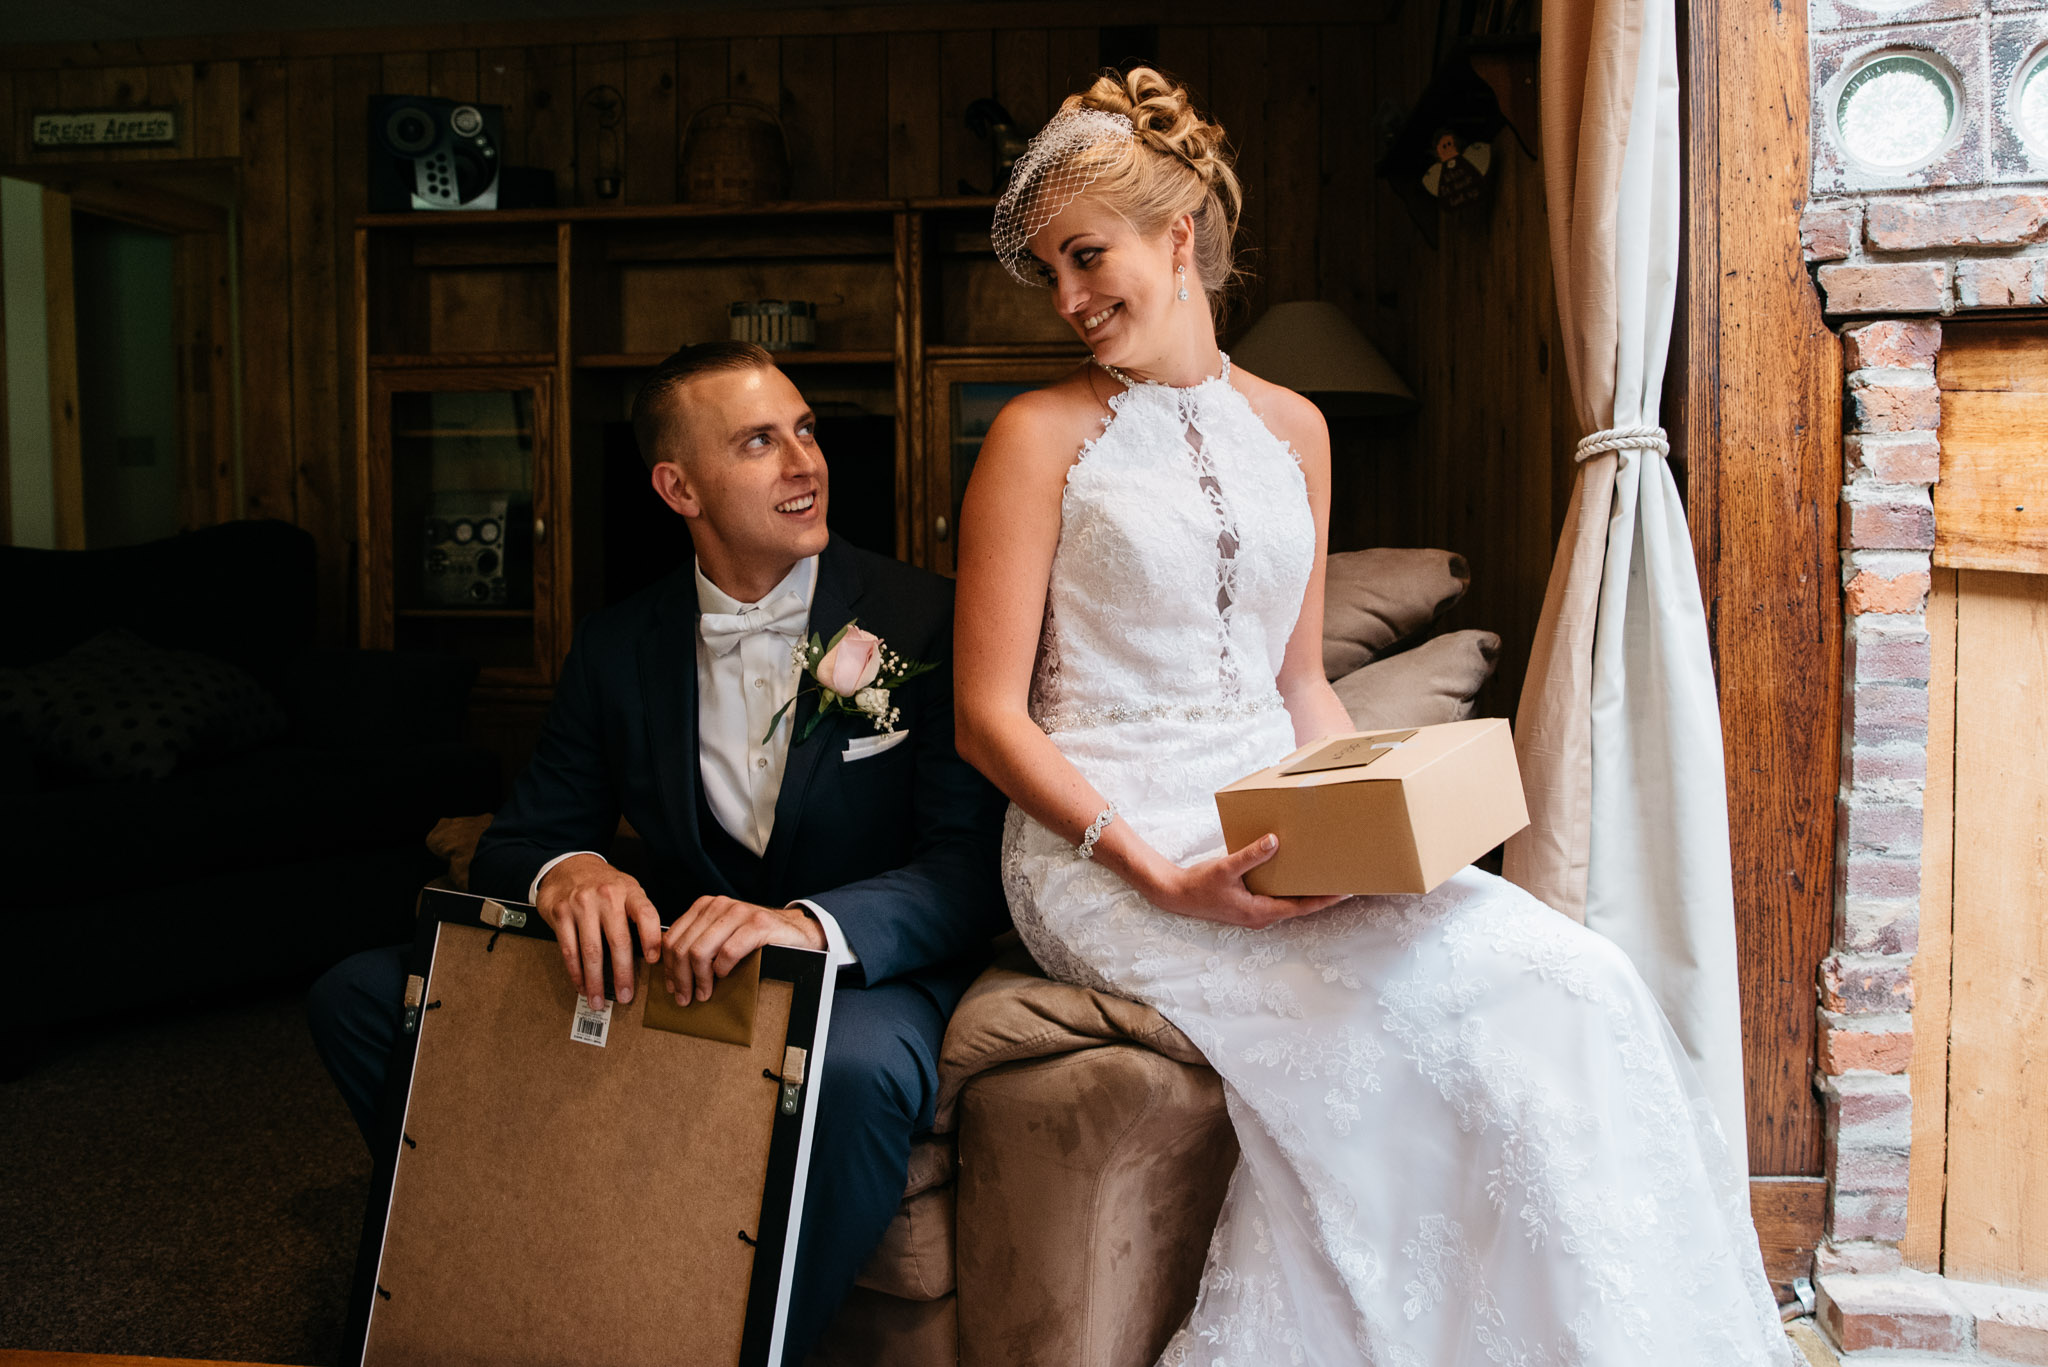 Bride and Groom Foggy Mountain Stahlstown PA Wedding Photography-8109.jpg